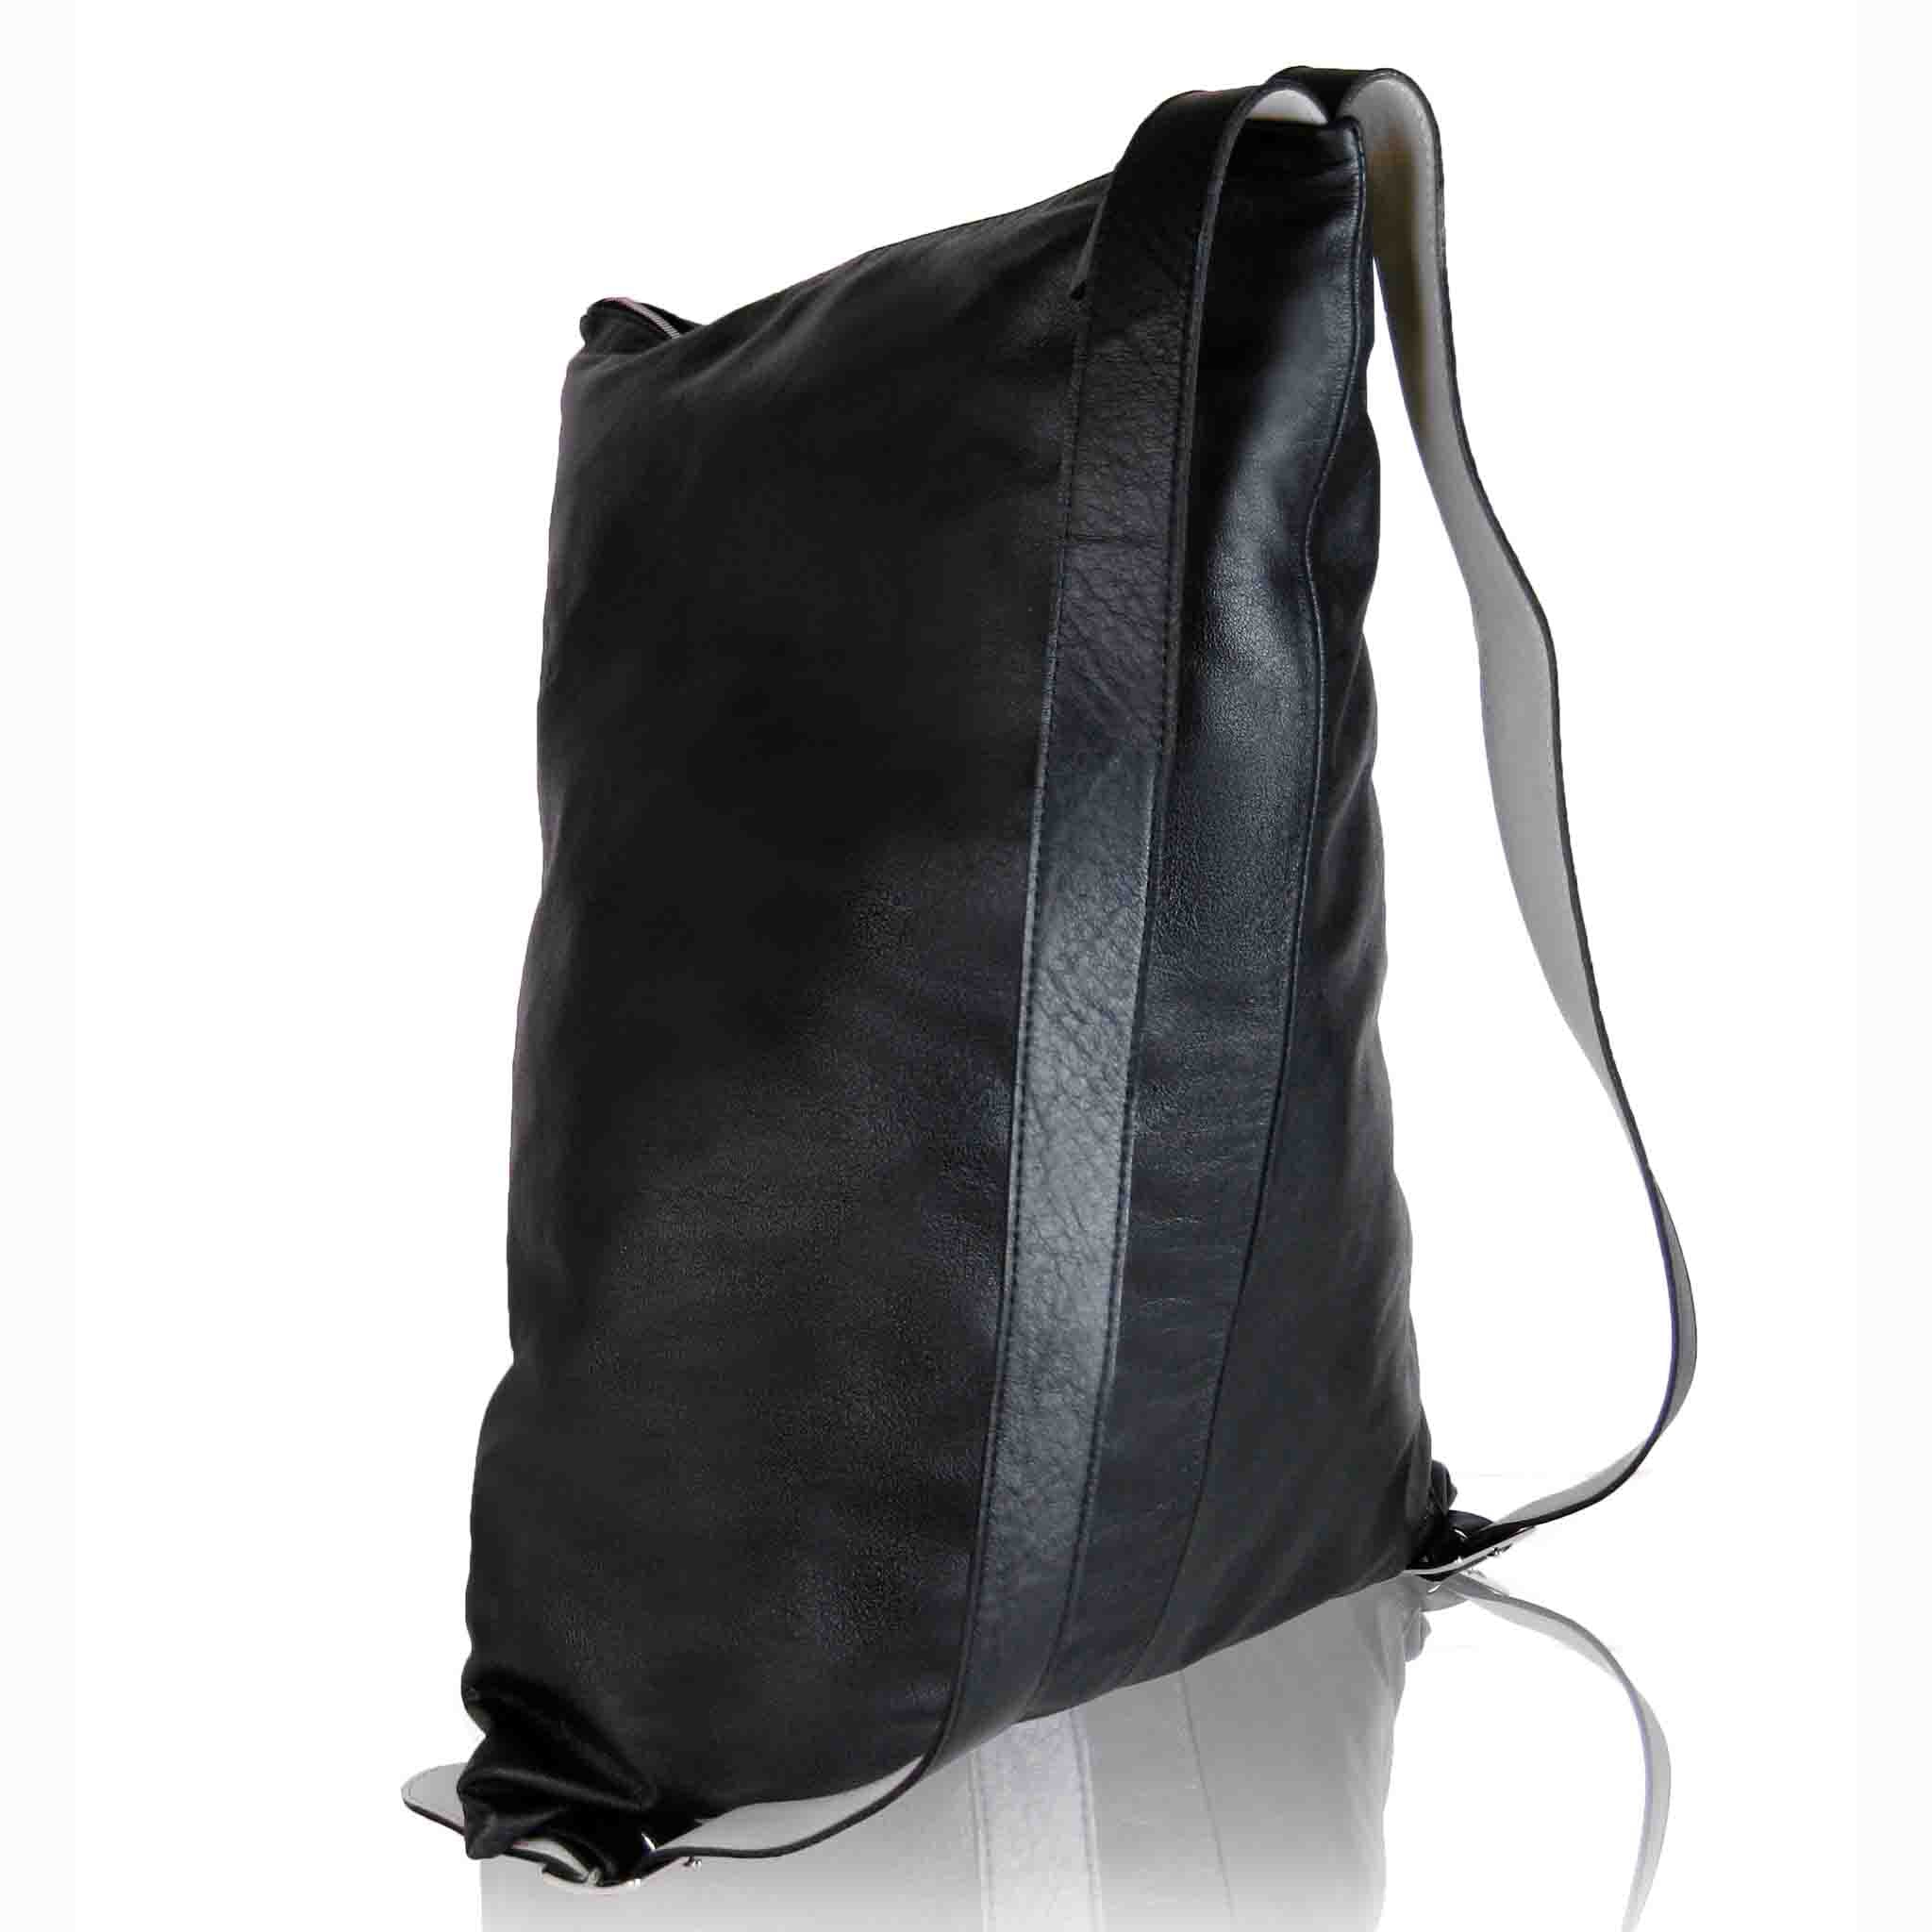 BLACK LEATHER SHOULDER MEN'S BACKPACK HAIA